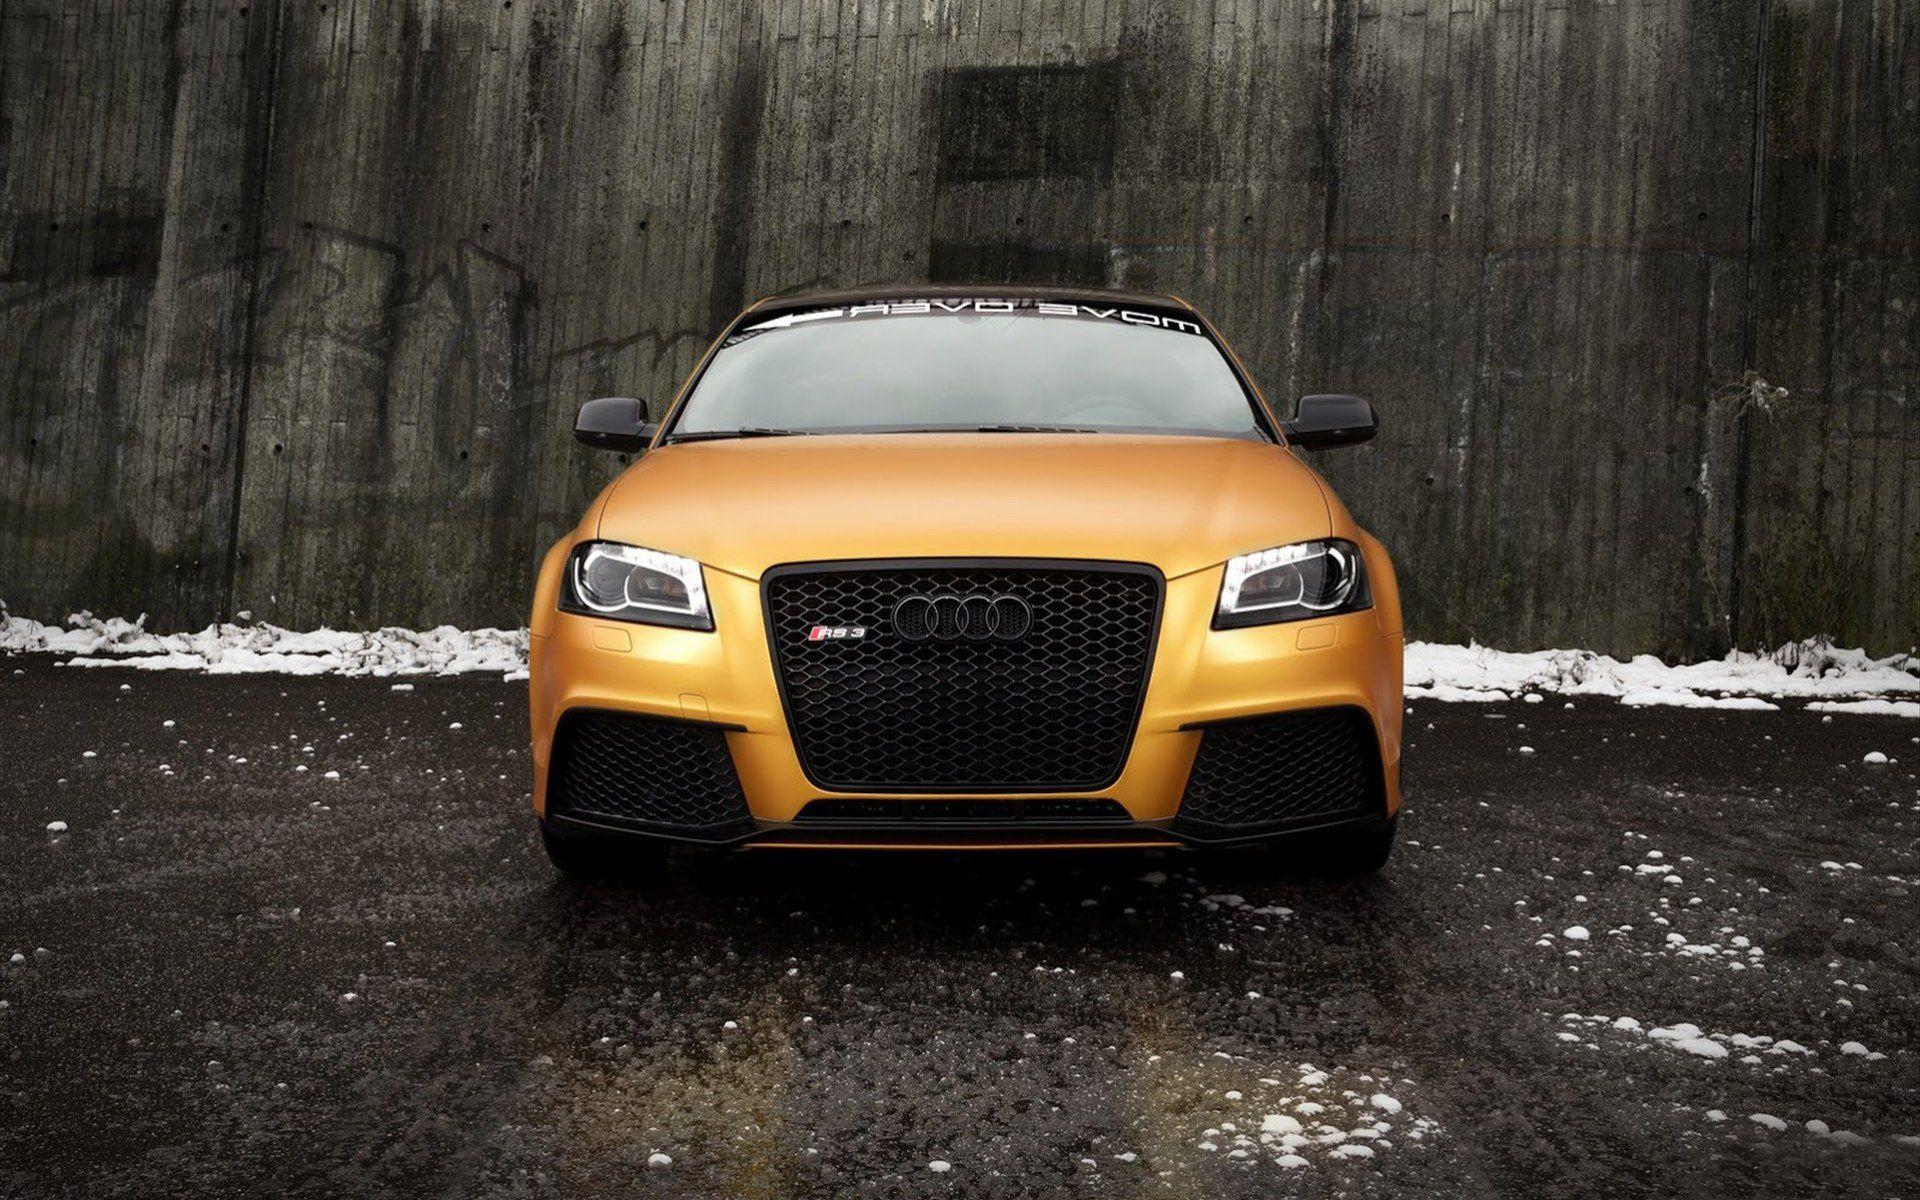 2013 Audi RS3 Sportback by Schwabenfolia Wallpapers